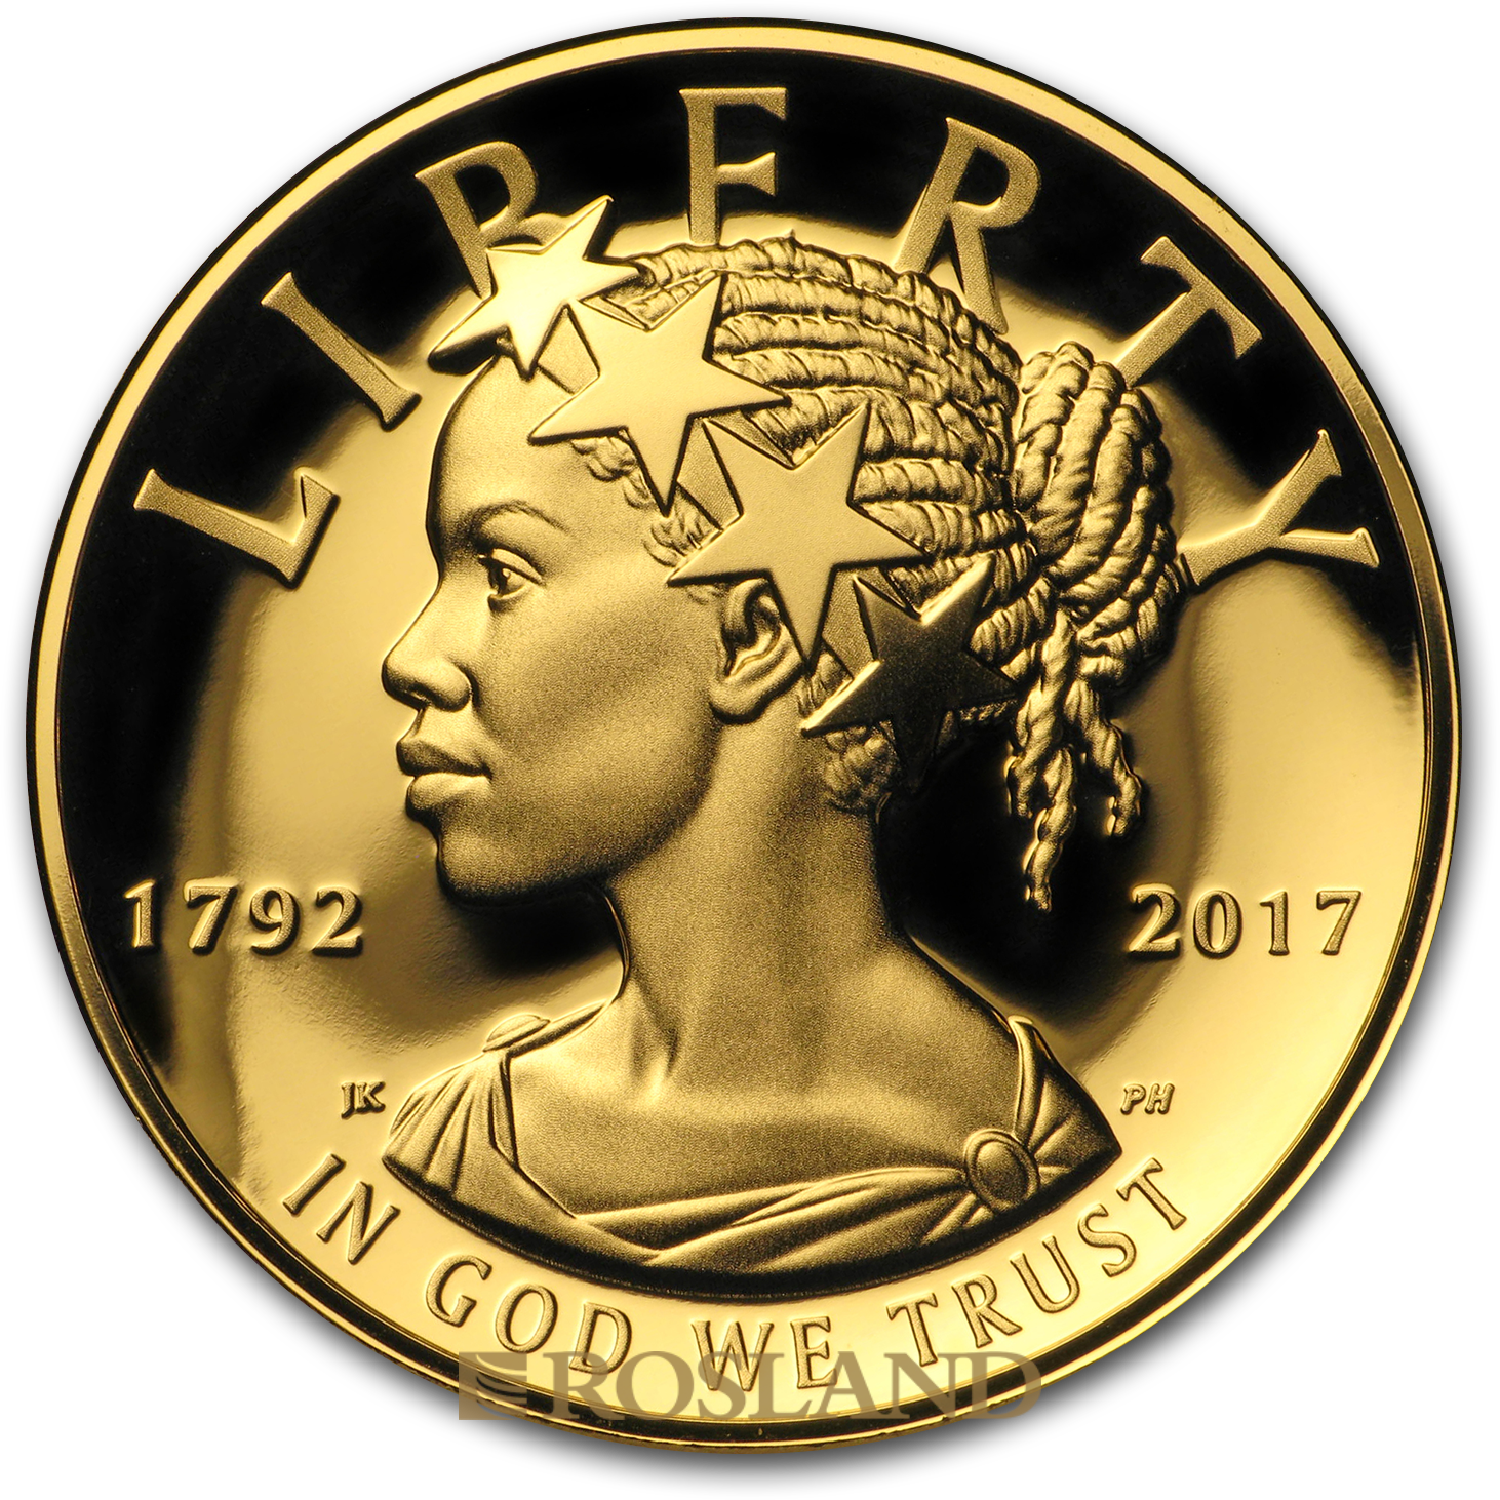 1 Unze Goldmünze American Liberty 2017 PL (HR, Box, Zertifikat)